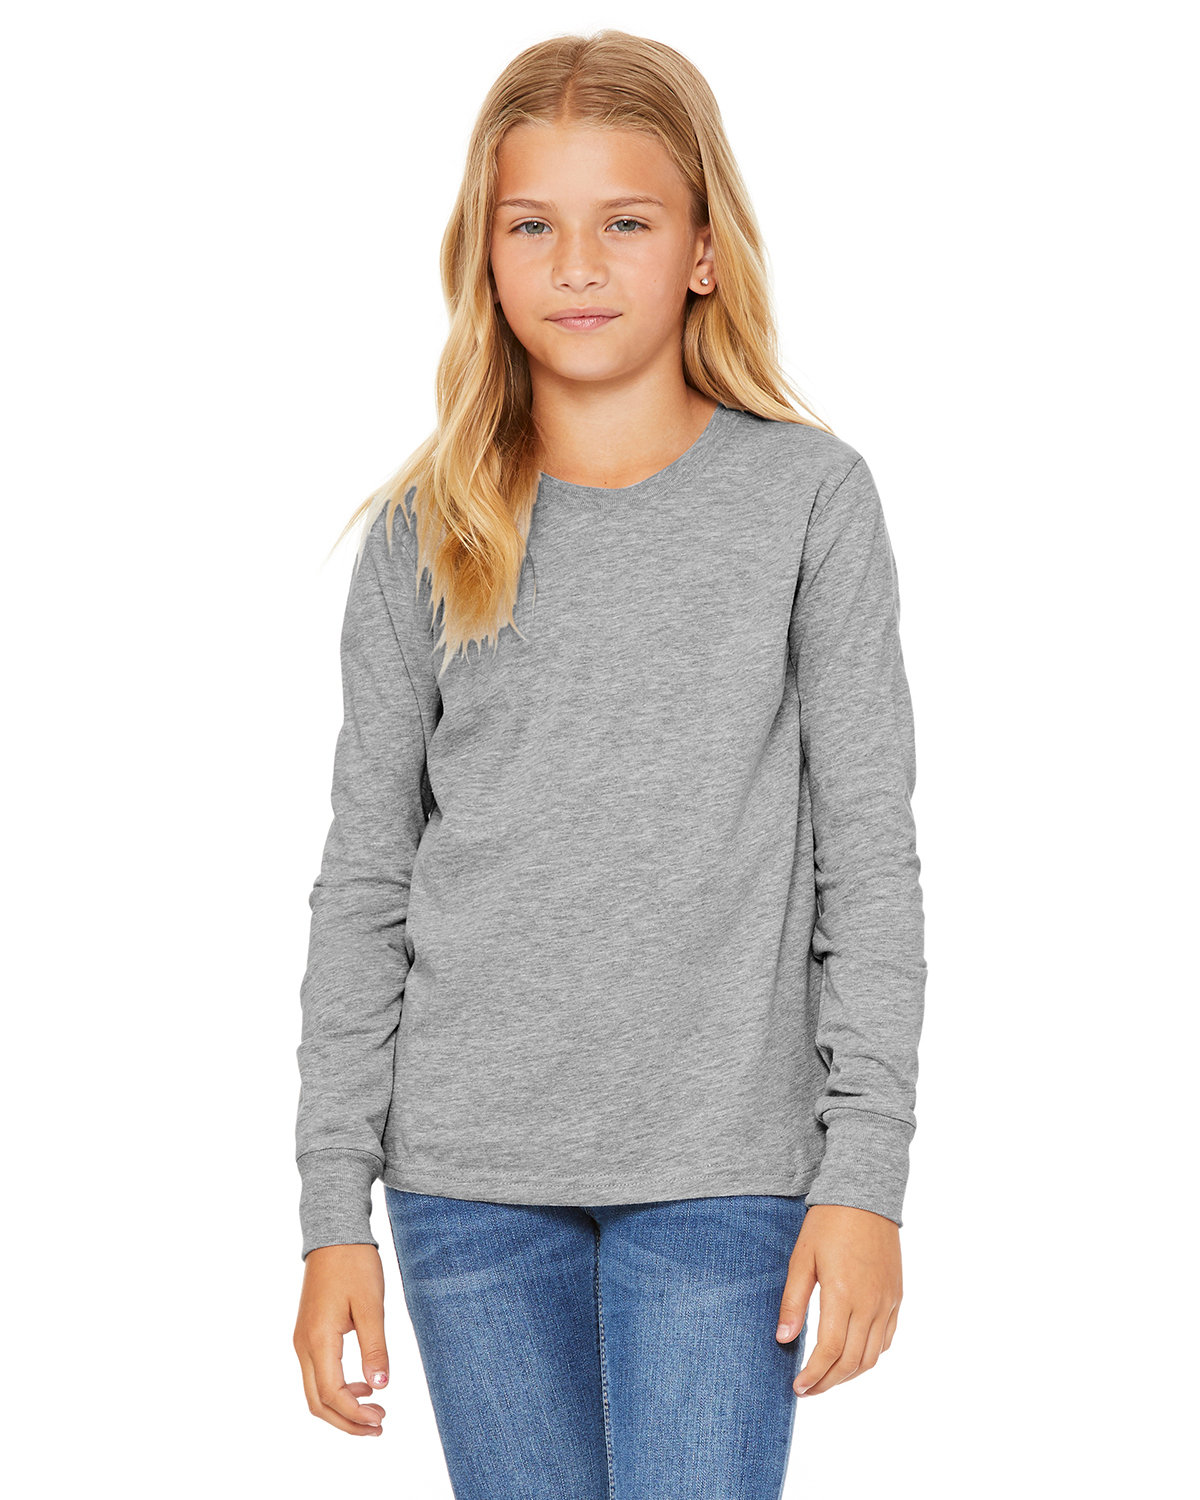 Bella + Canvas Youth Jersey Long-Sleeve T-Shirt ATHLETIC HEATHER